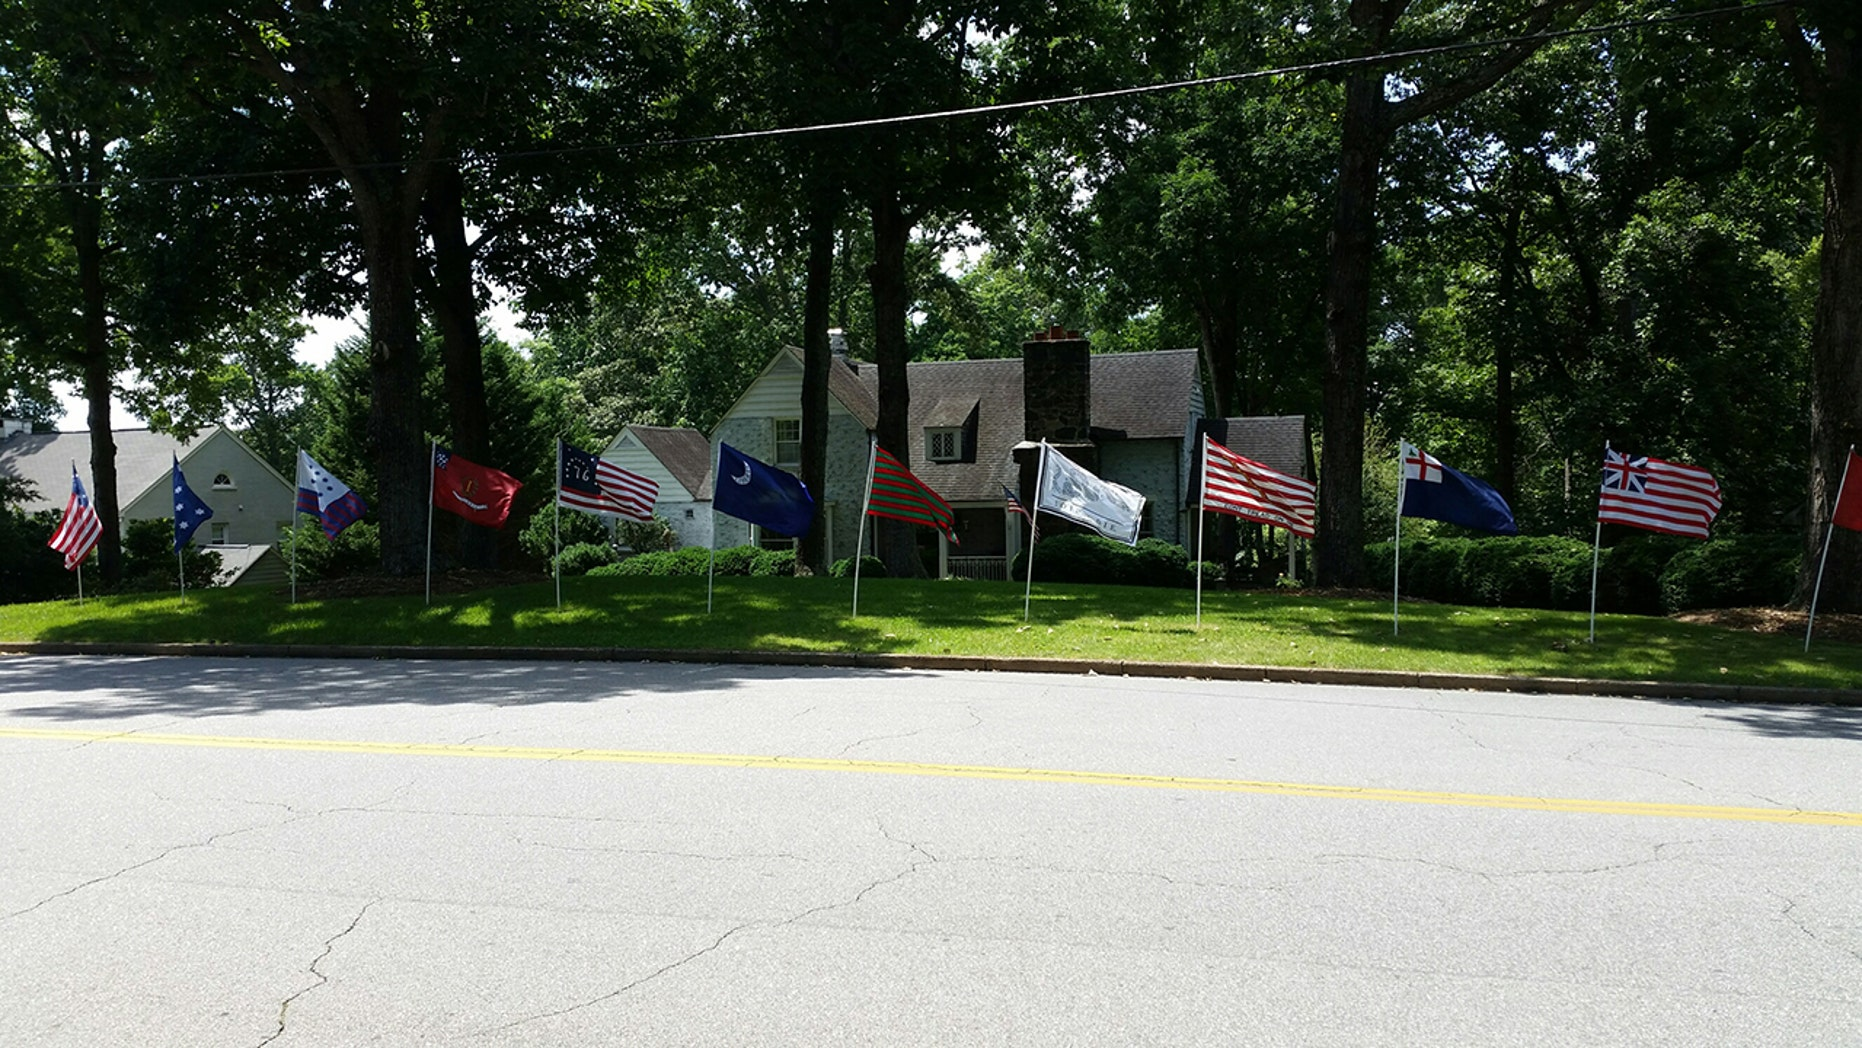 Revolutionary War-era flags stand in Eric Monday's front yard in Martinsville, Va.